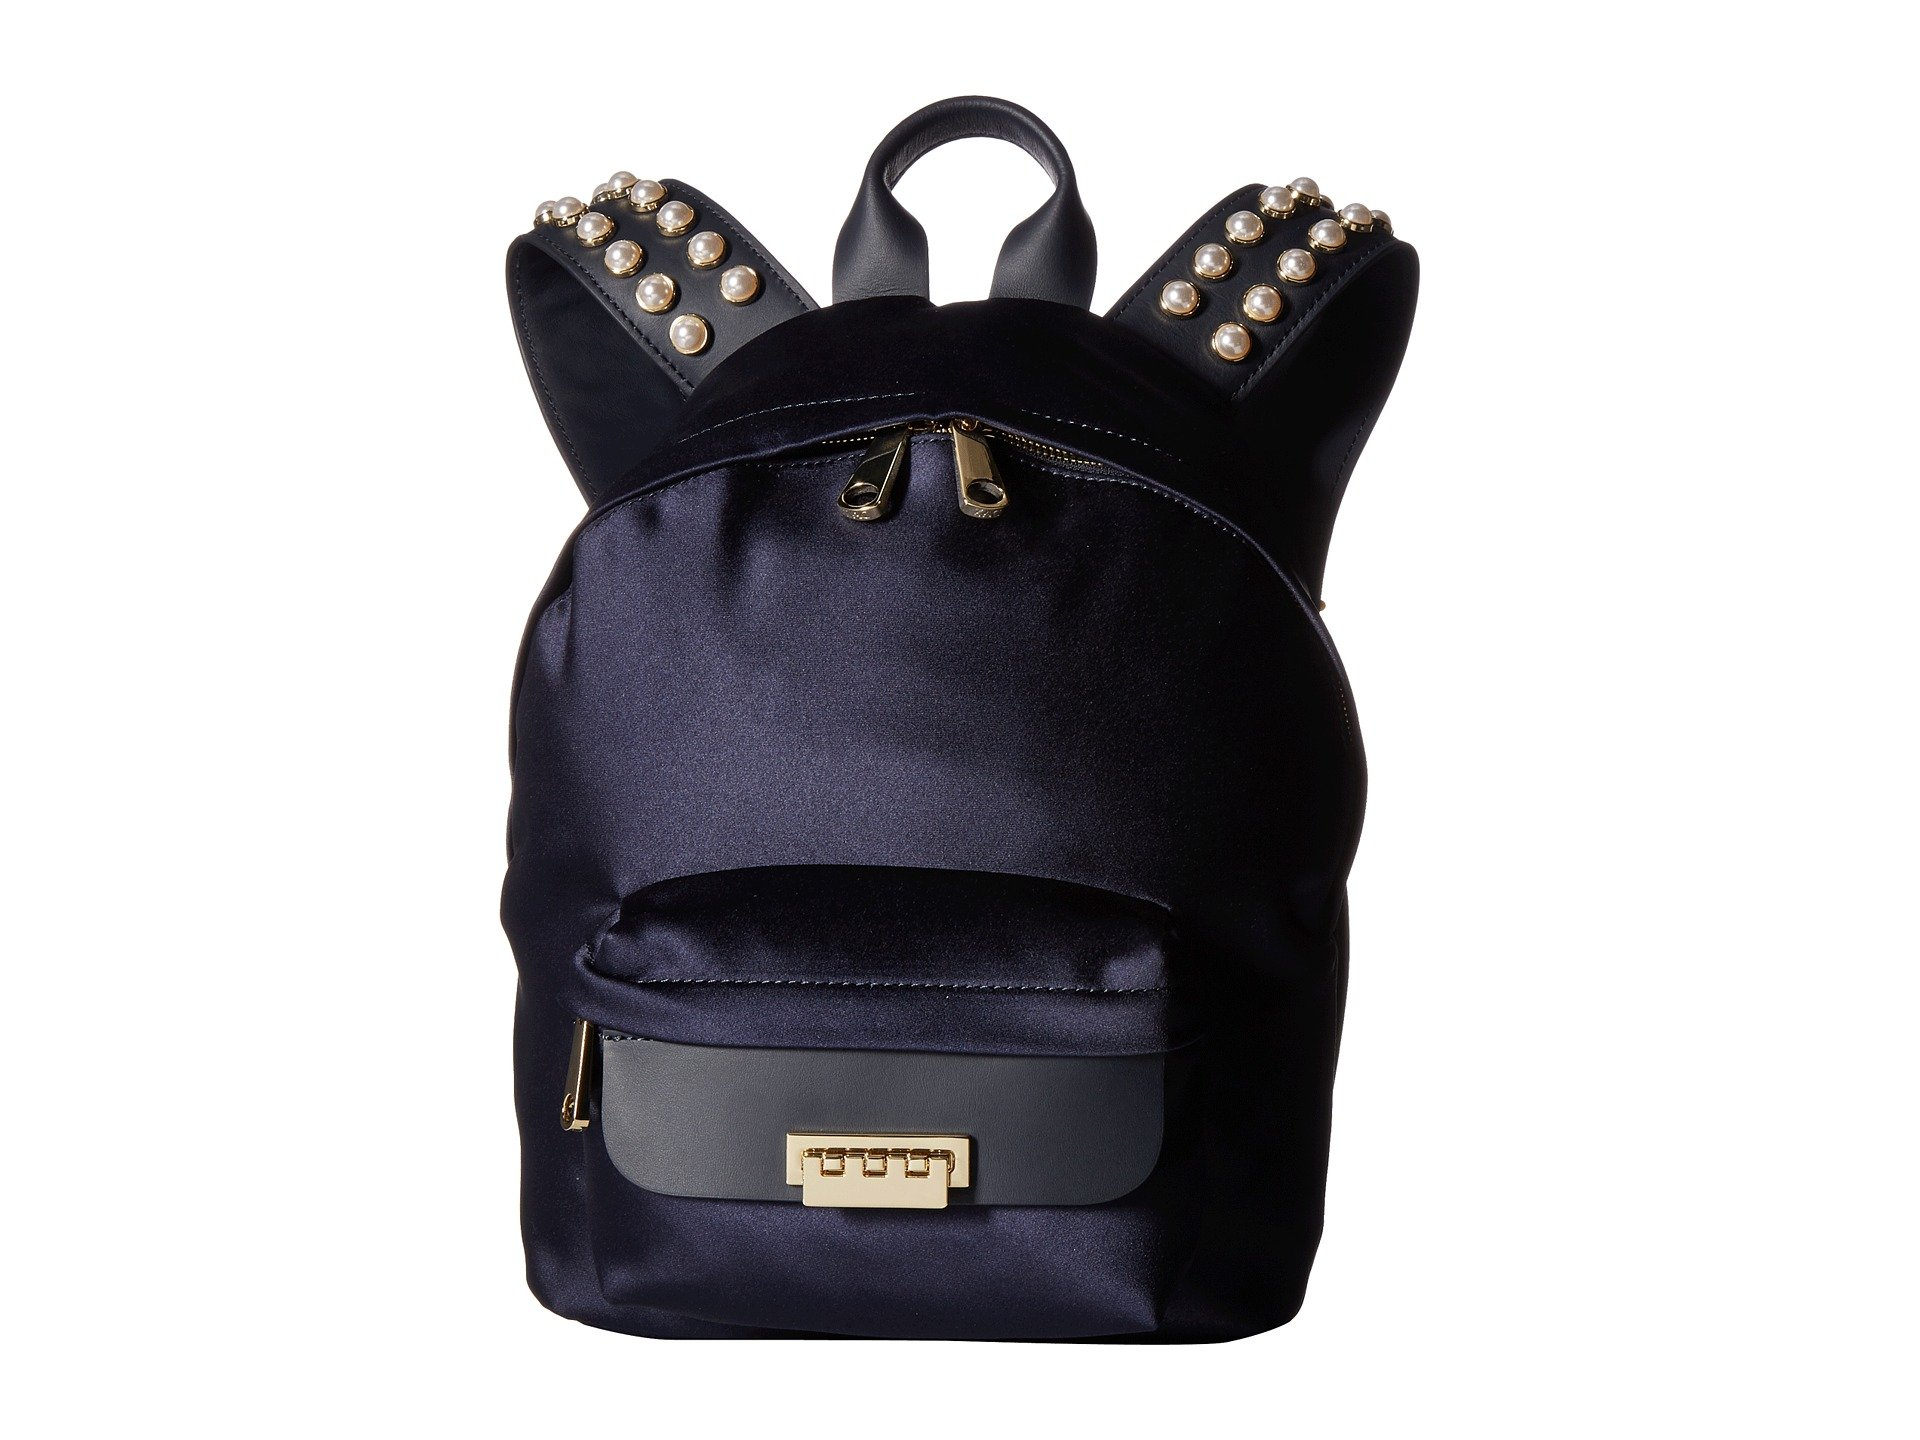 Mochila para Mujer ZAC Zac Posen Eartha Iconic Small Backpack - Satin  + ZAC Zac Posen en VeoyCompro.net